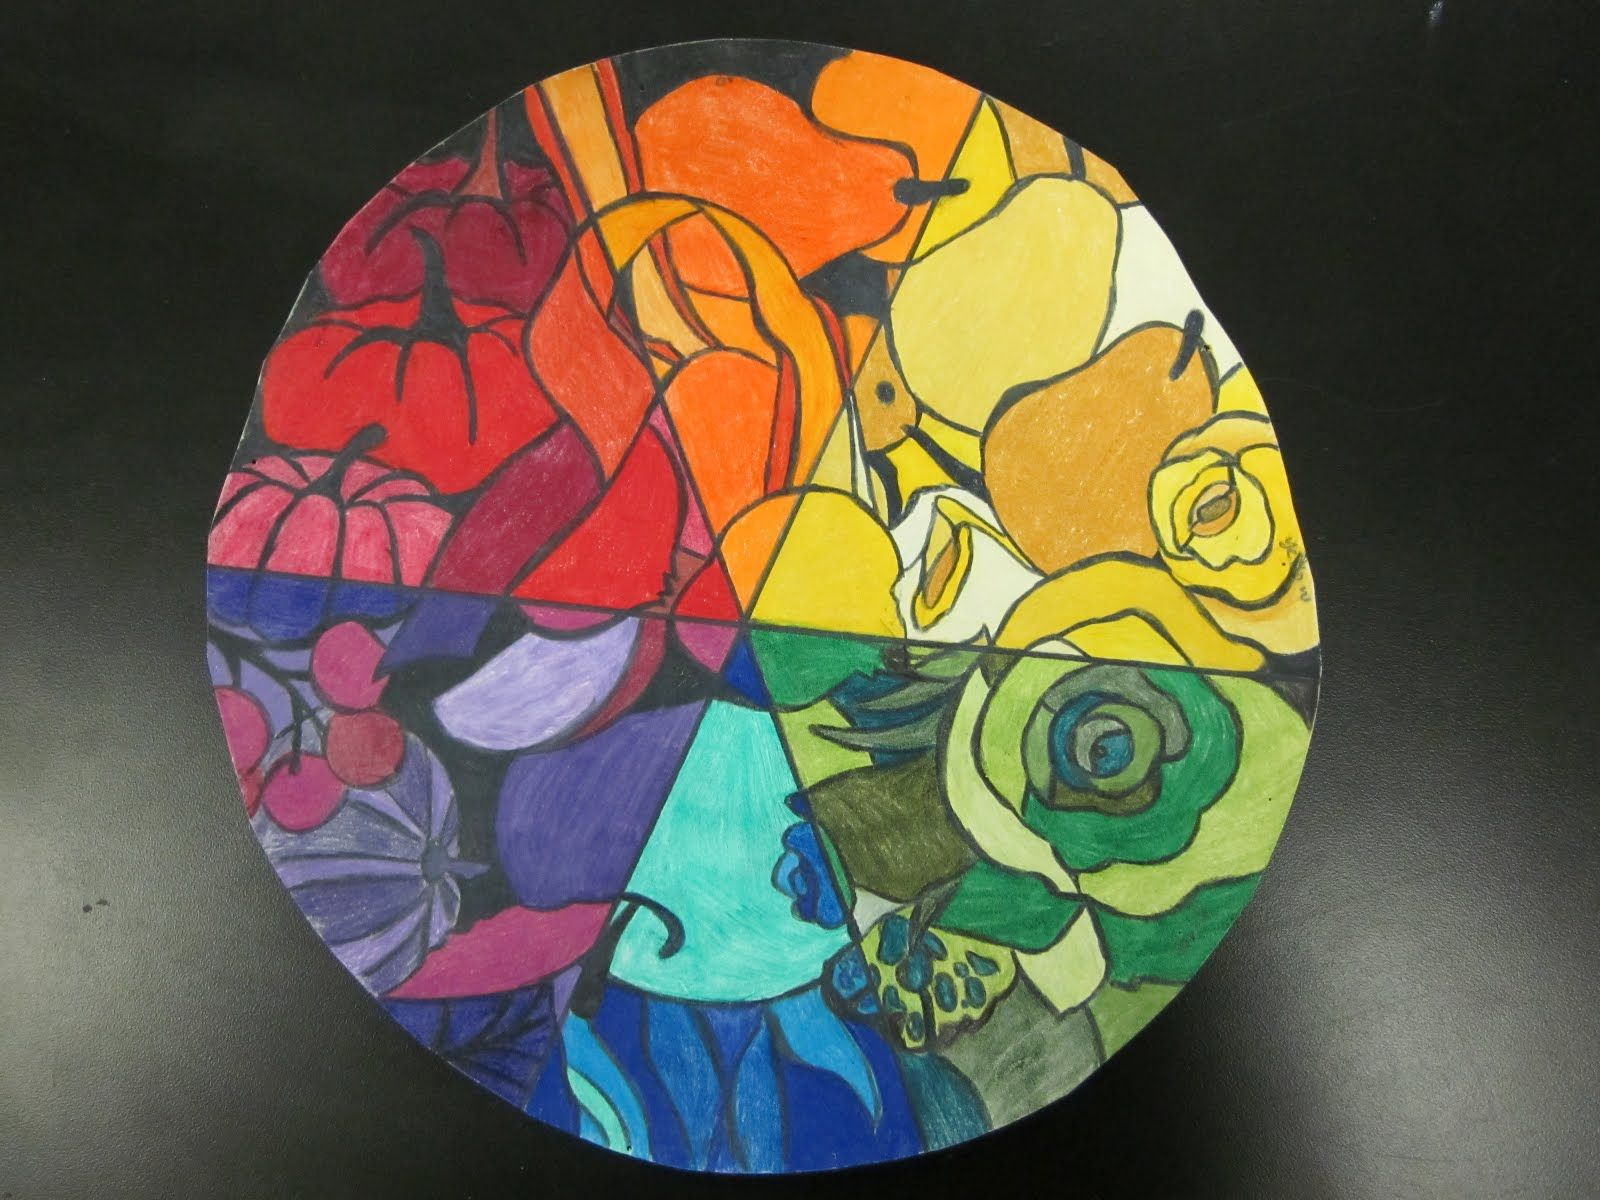 Interesting Twist On A Color Wheel Project Draw An Image